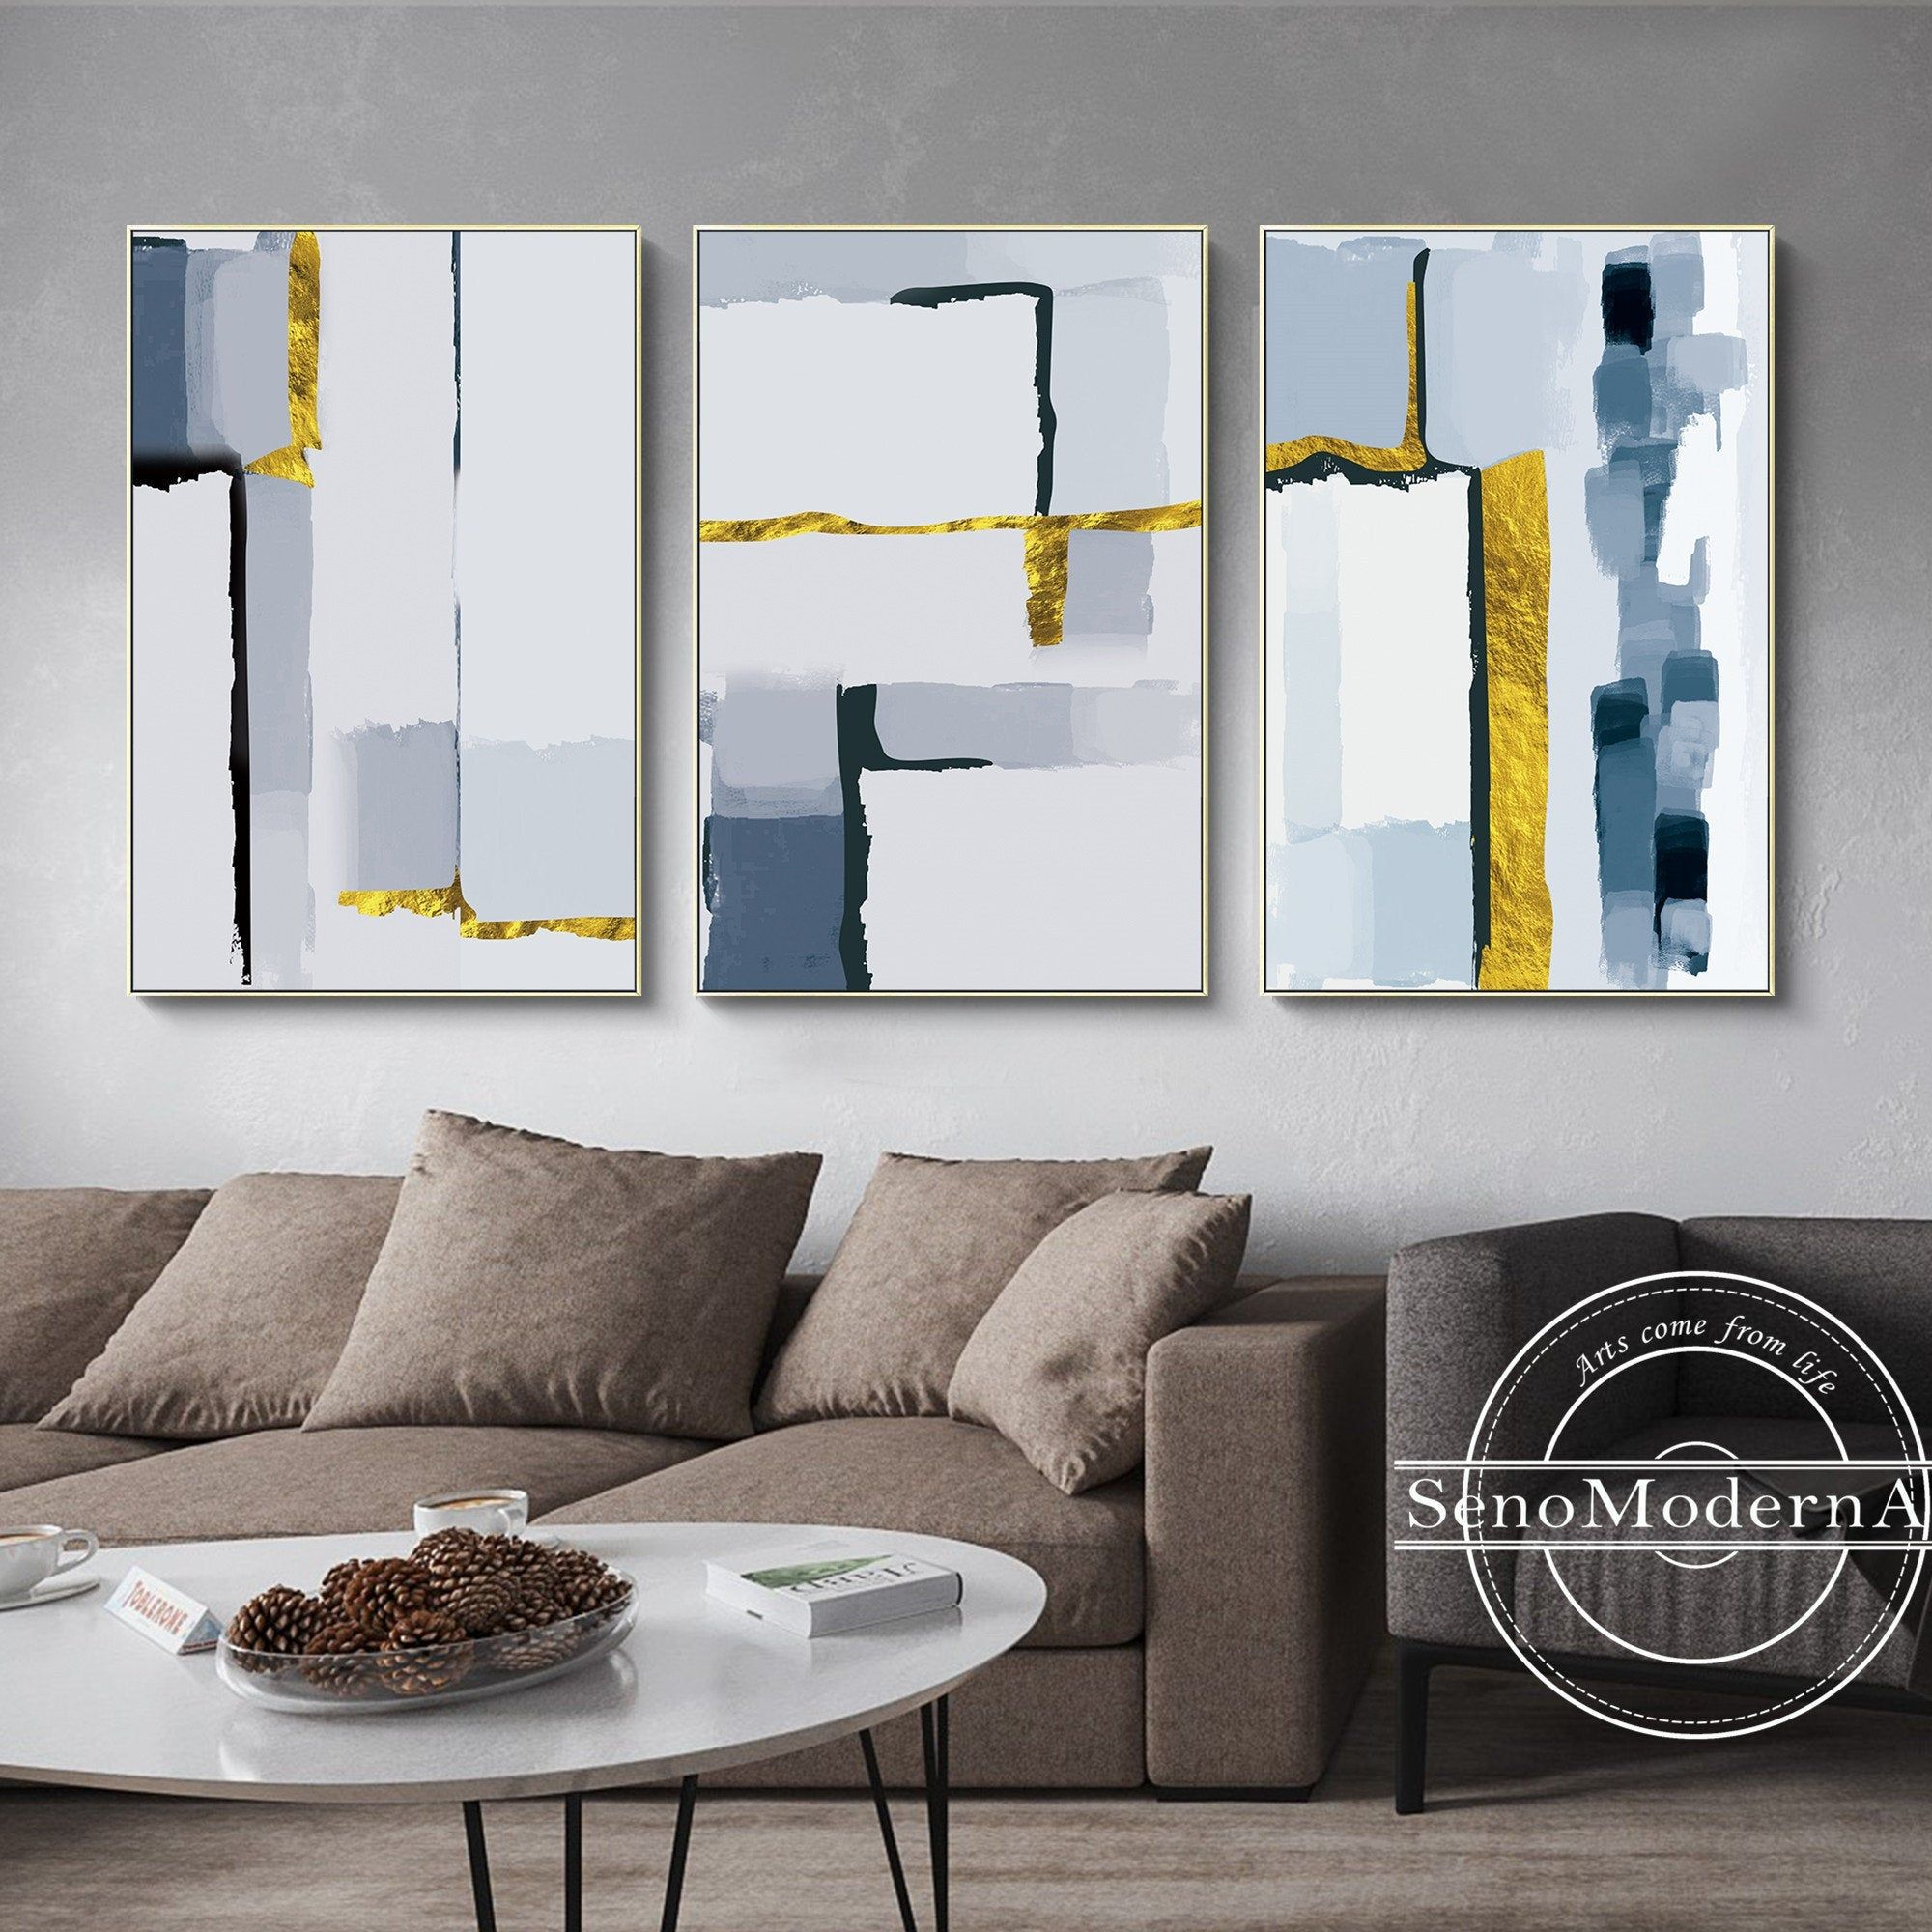 Set Of 3 Frame Wall Art Abstract Geometric Gold Navy Blue Black Print Painting On Canvas Wall Art Large Print Printable Wall Art Prints In 2021 Framed Wall Art Wall Printables